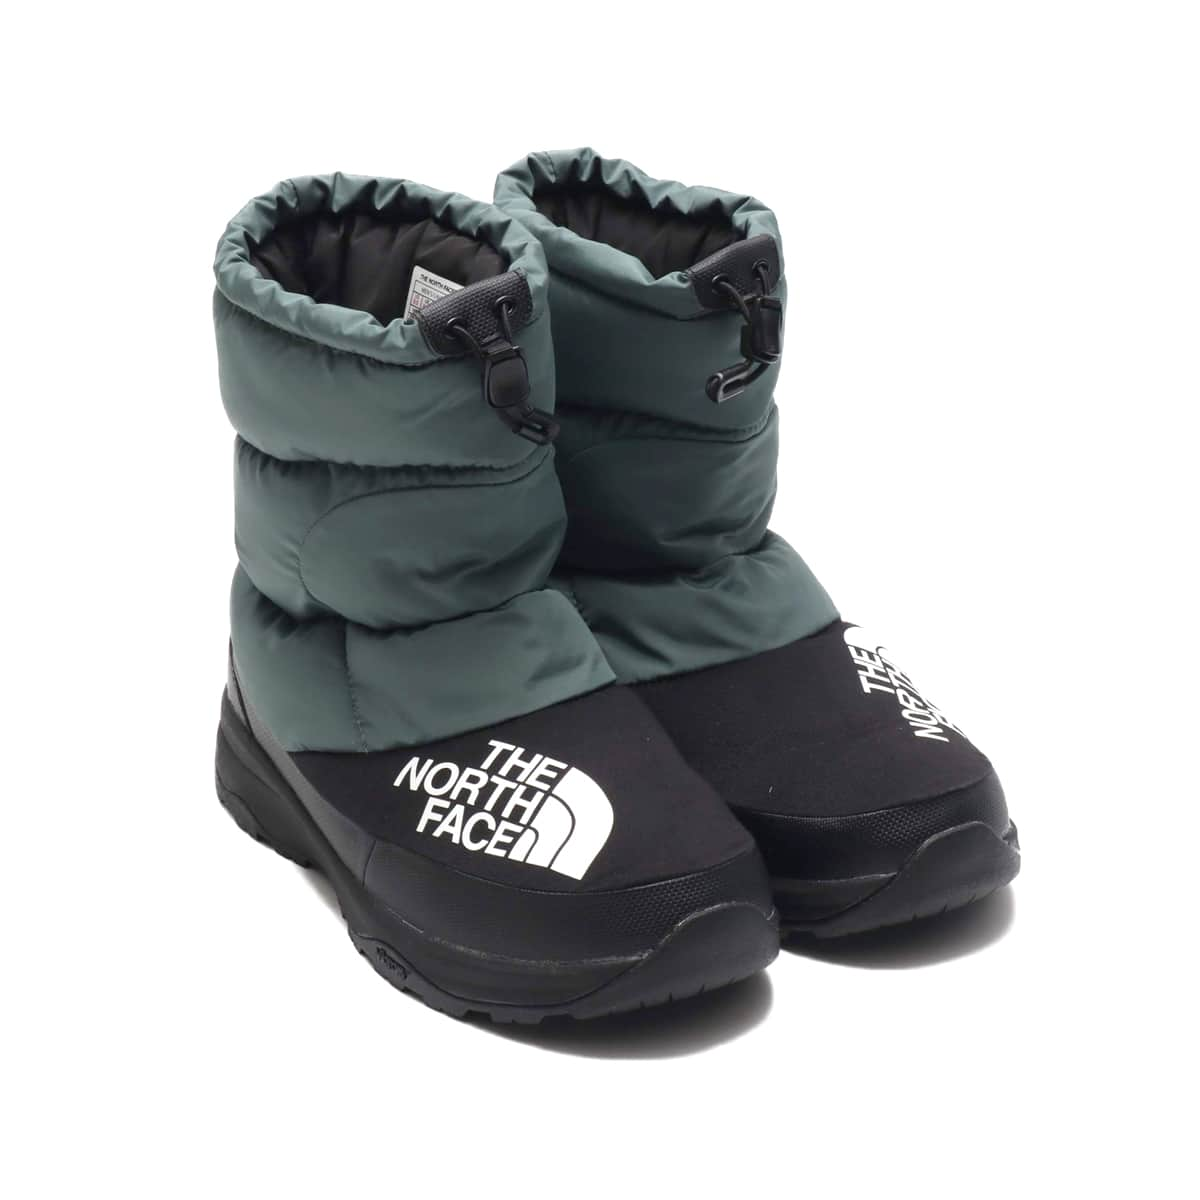 THE NORTH FACE NUPTSE DOWN BOOTIE ジャングルグリーン/ブラック 19FW-I_photo_large